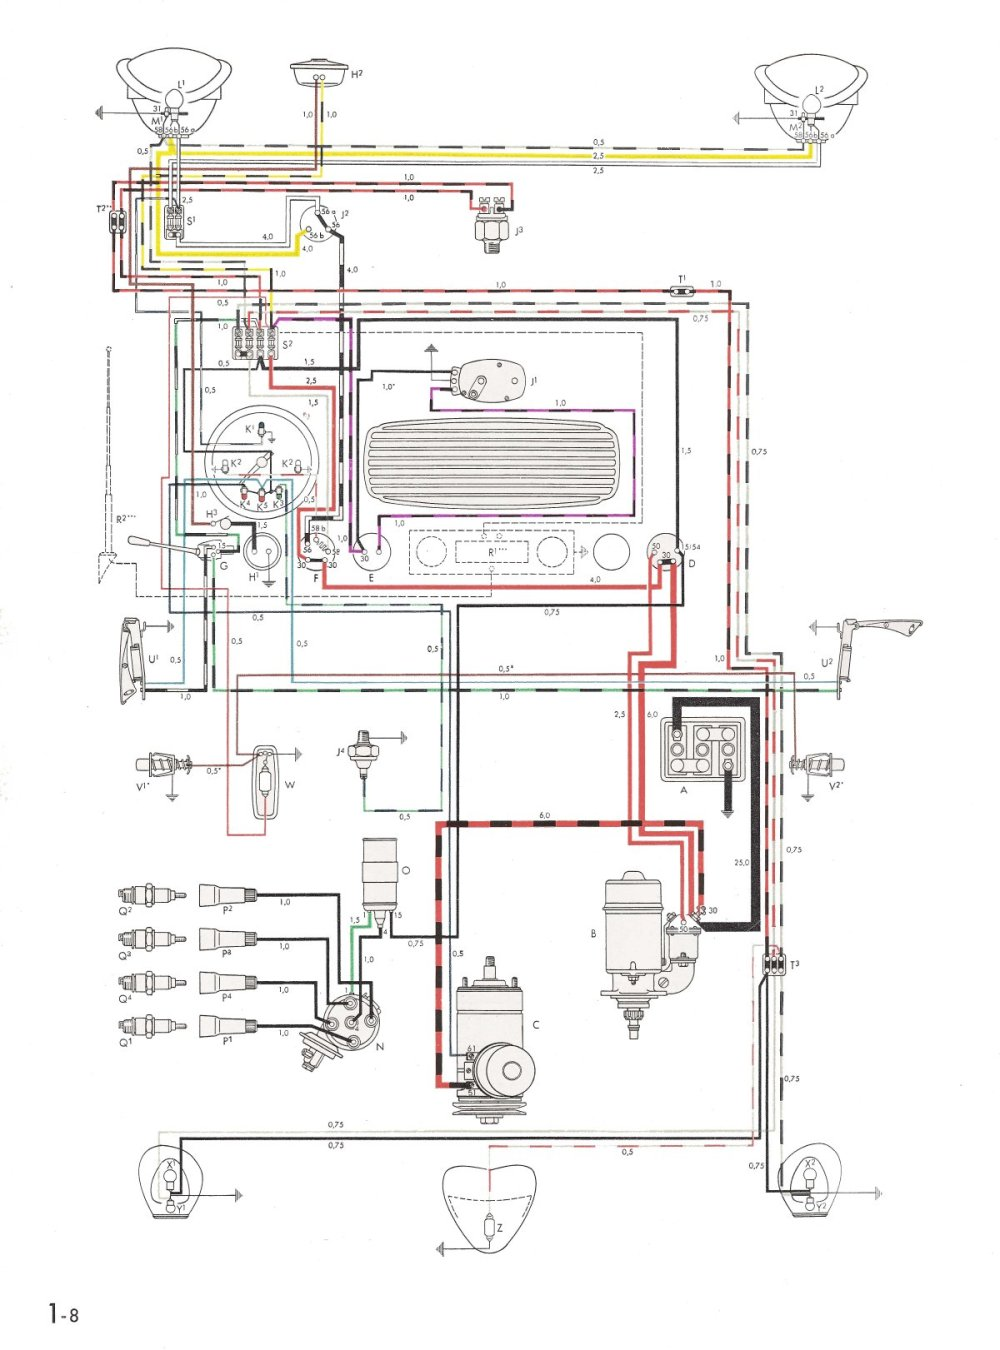 medium resolution of 74 vw super beetle wiring diagram wiring diagram centre74 vw super beetle wiring diagram